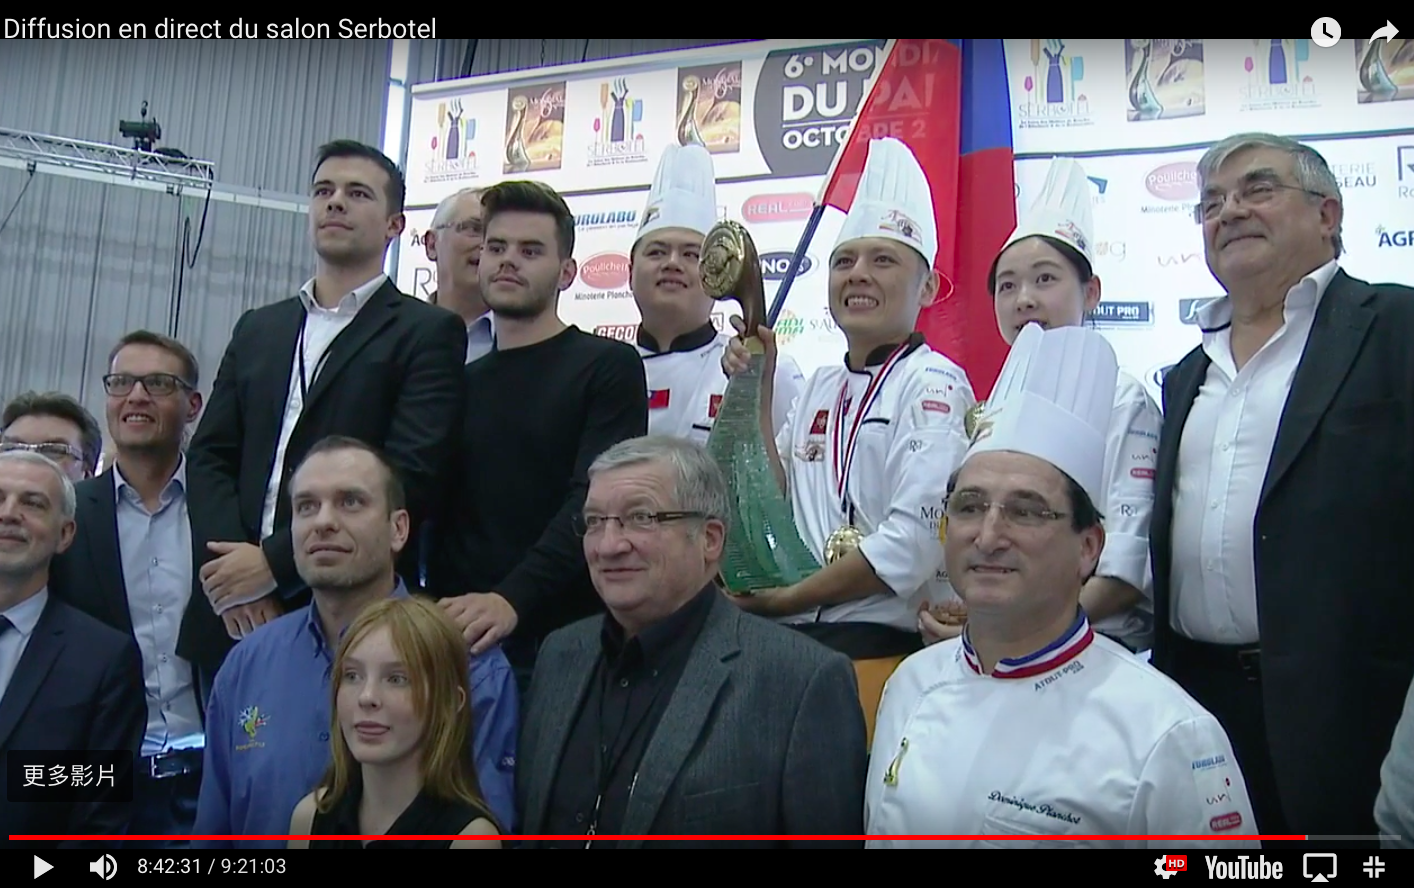 Taiwan team members in back row at The World Bread contest.